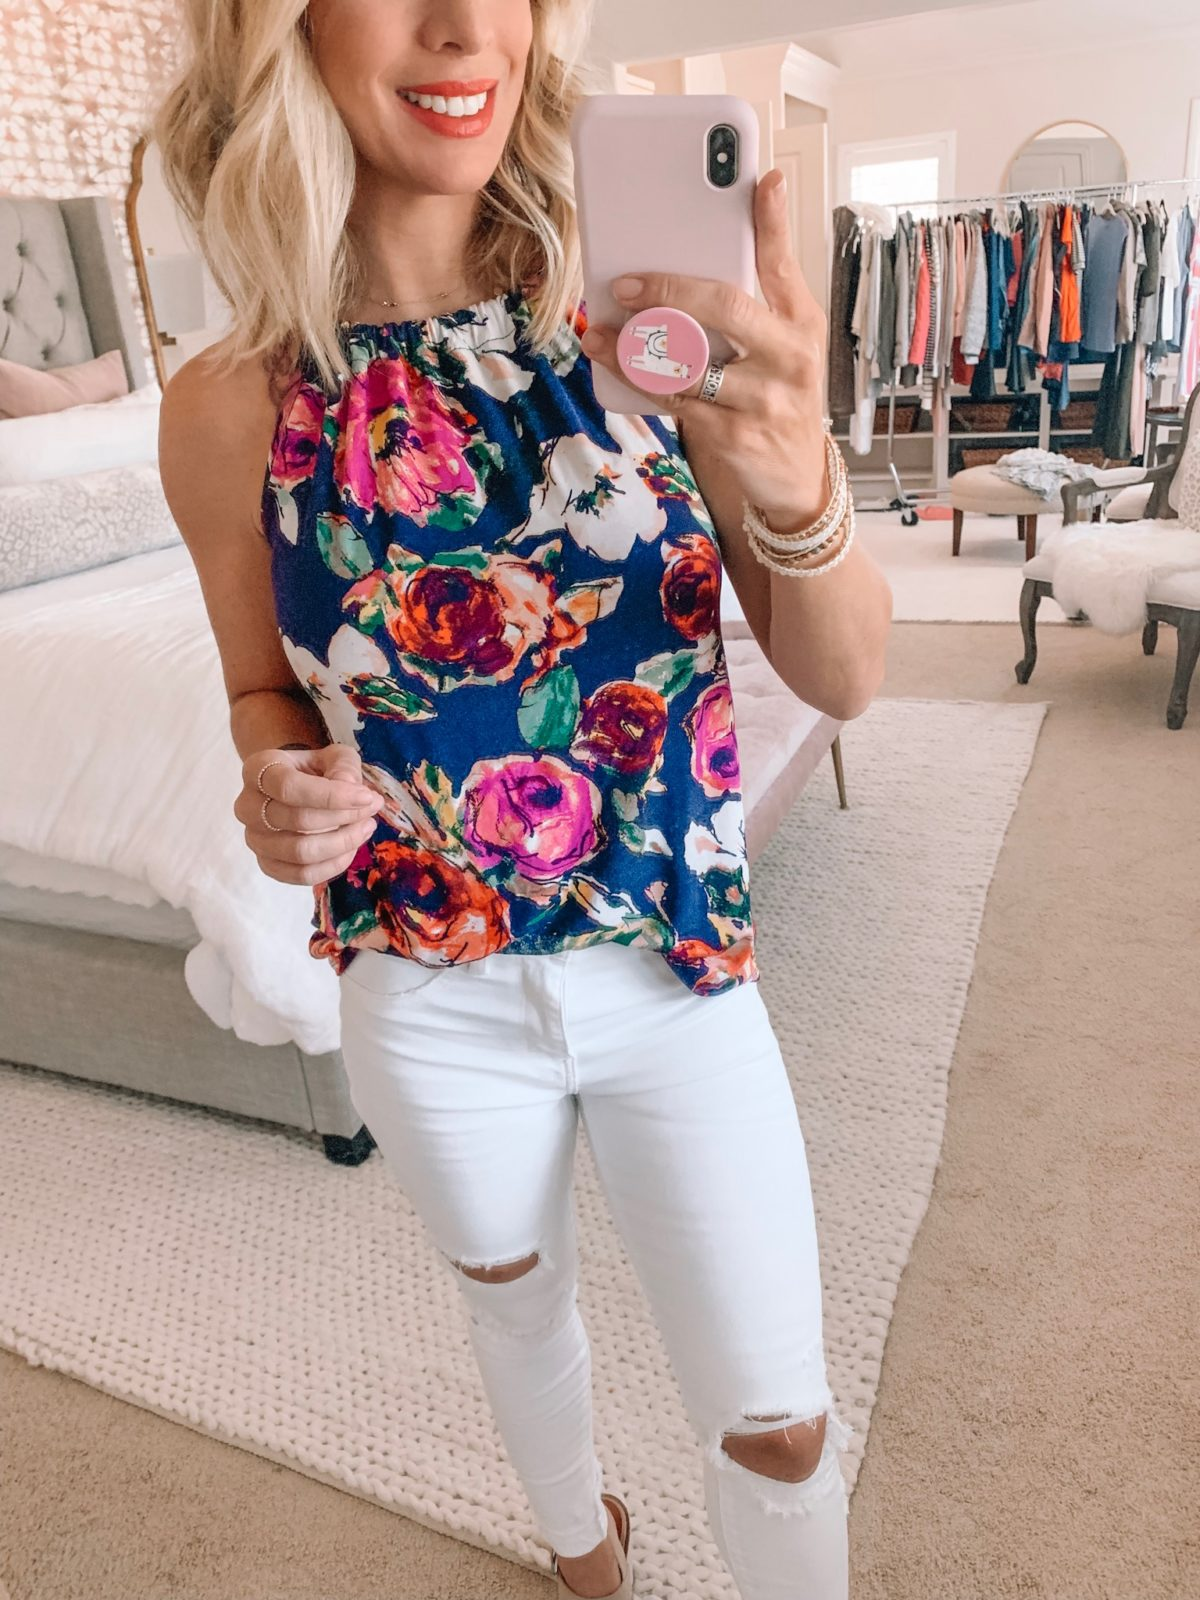 Dressing Room - Floral tank and white jeans